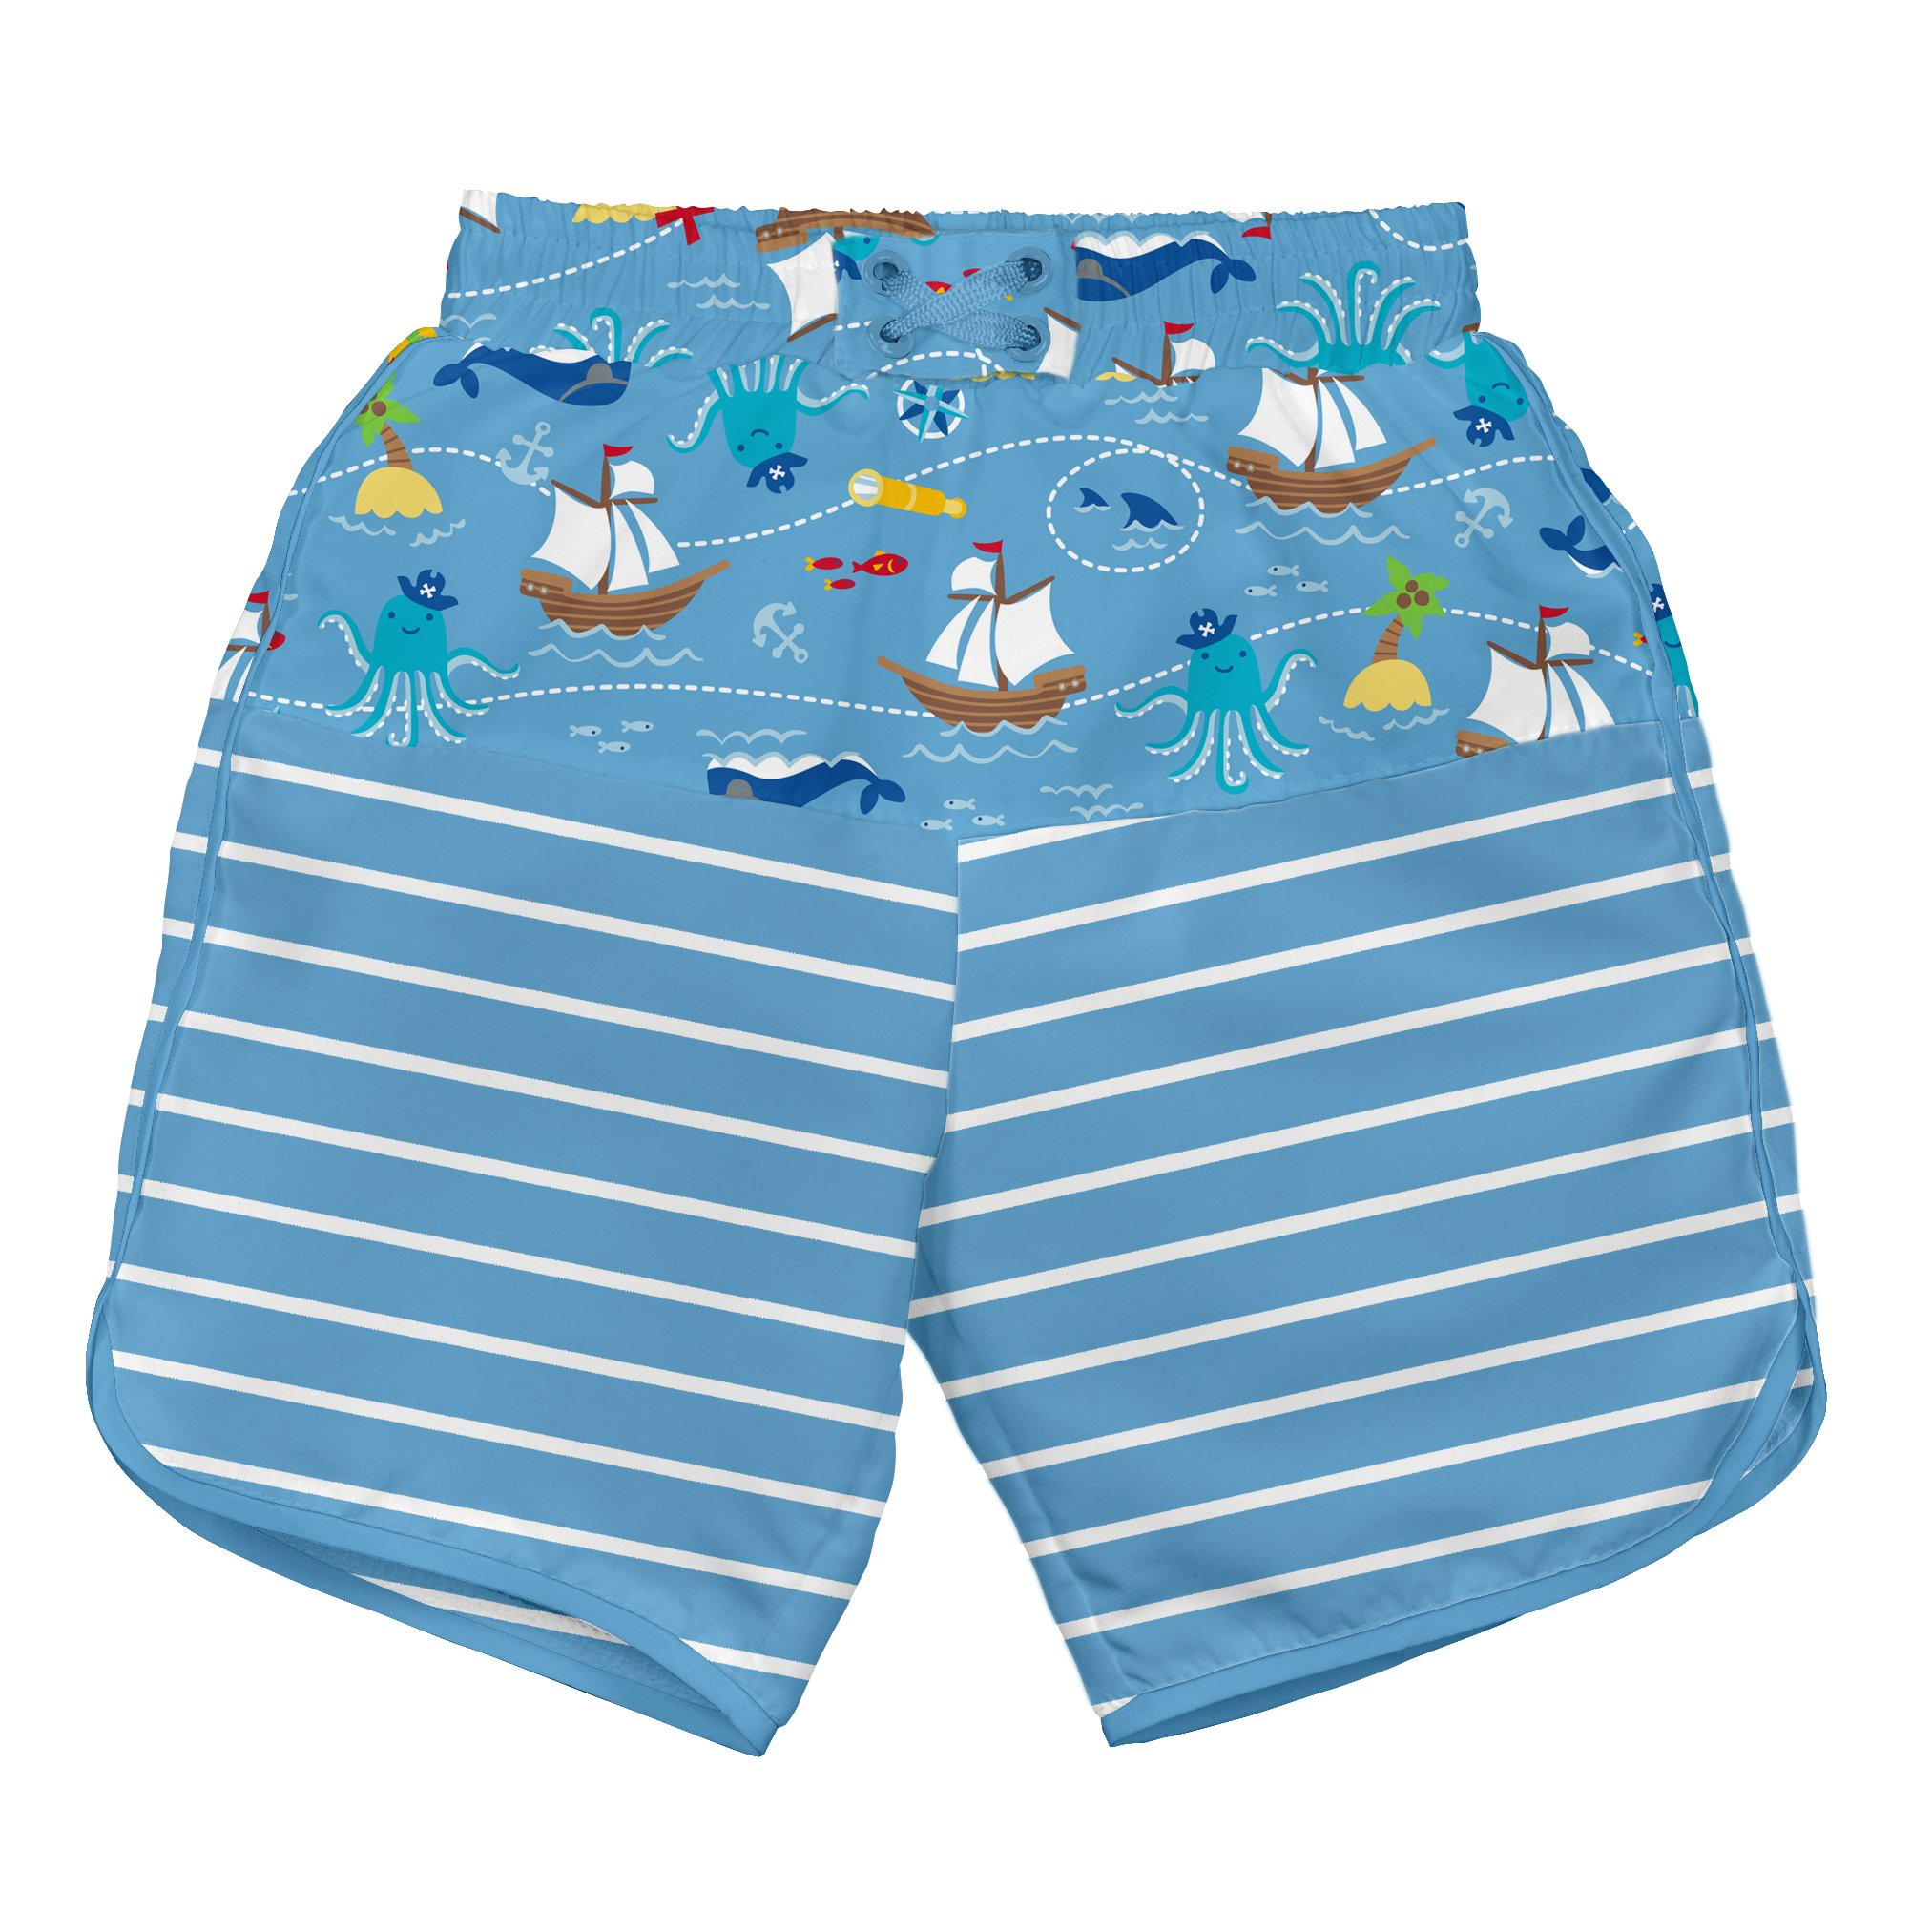 3T Navy Pirate Ship i play Toddler Boys Pocket Trunks with Built-in Reusable Absorbent Swim Diaper